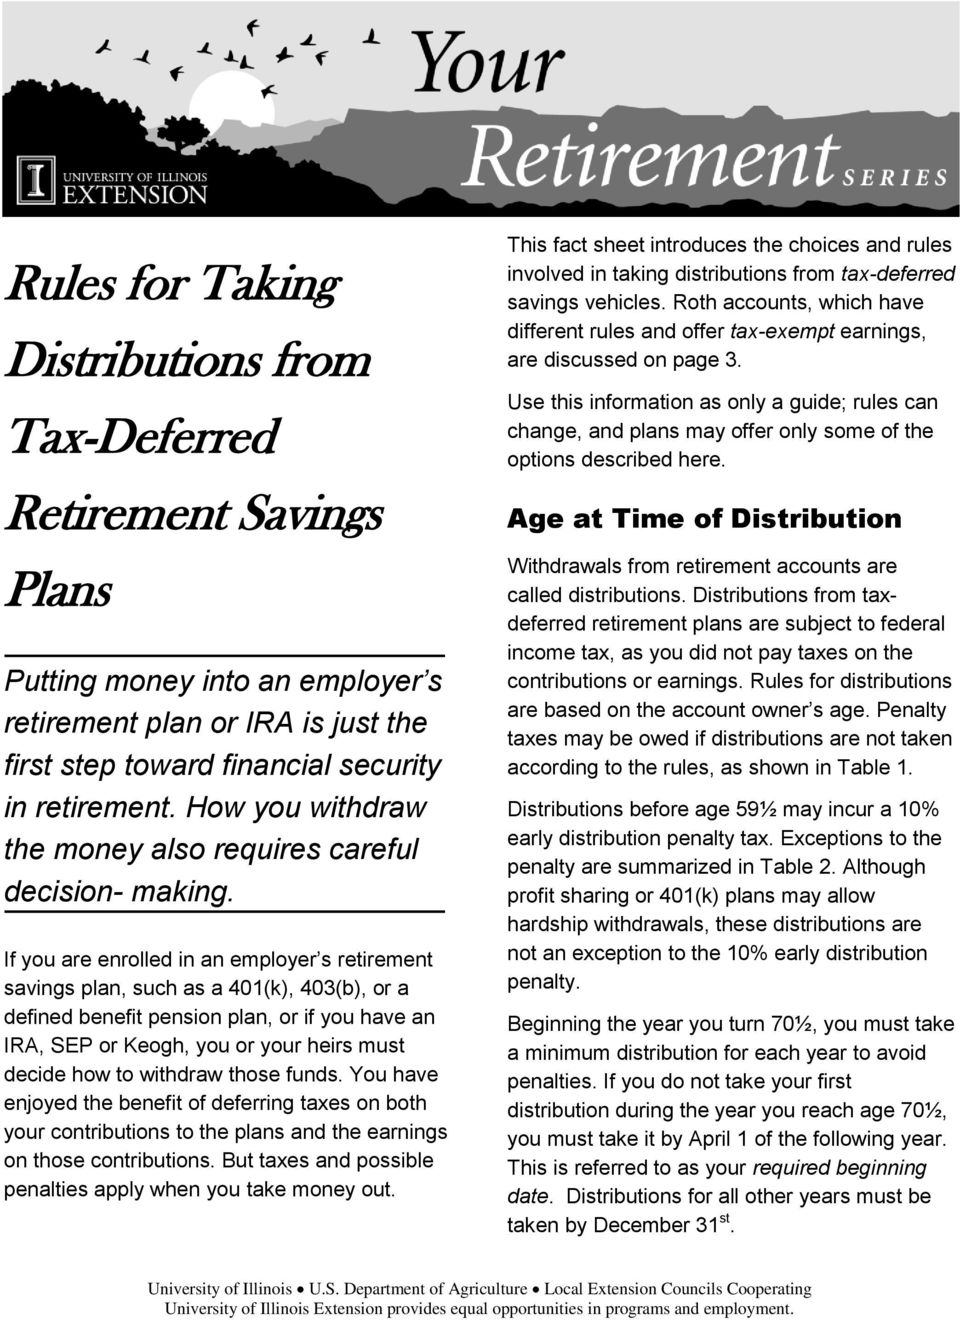 If you are enrolled in an employer s retirement savings plan, such as a 401(k), 403(b), or a defined benefit pension plan, or if you have an IRA, SEP or Keogh, you or your heirs must decide how to